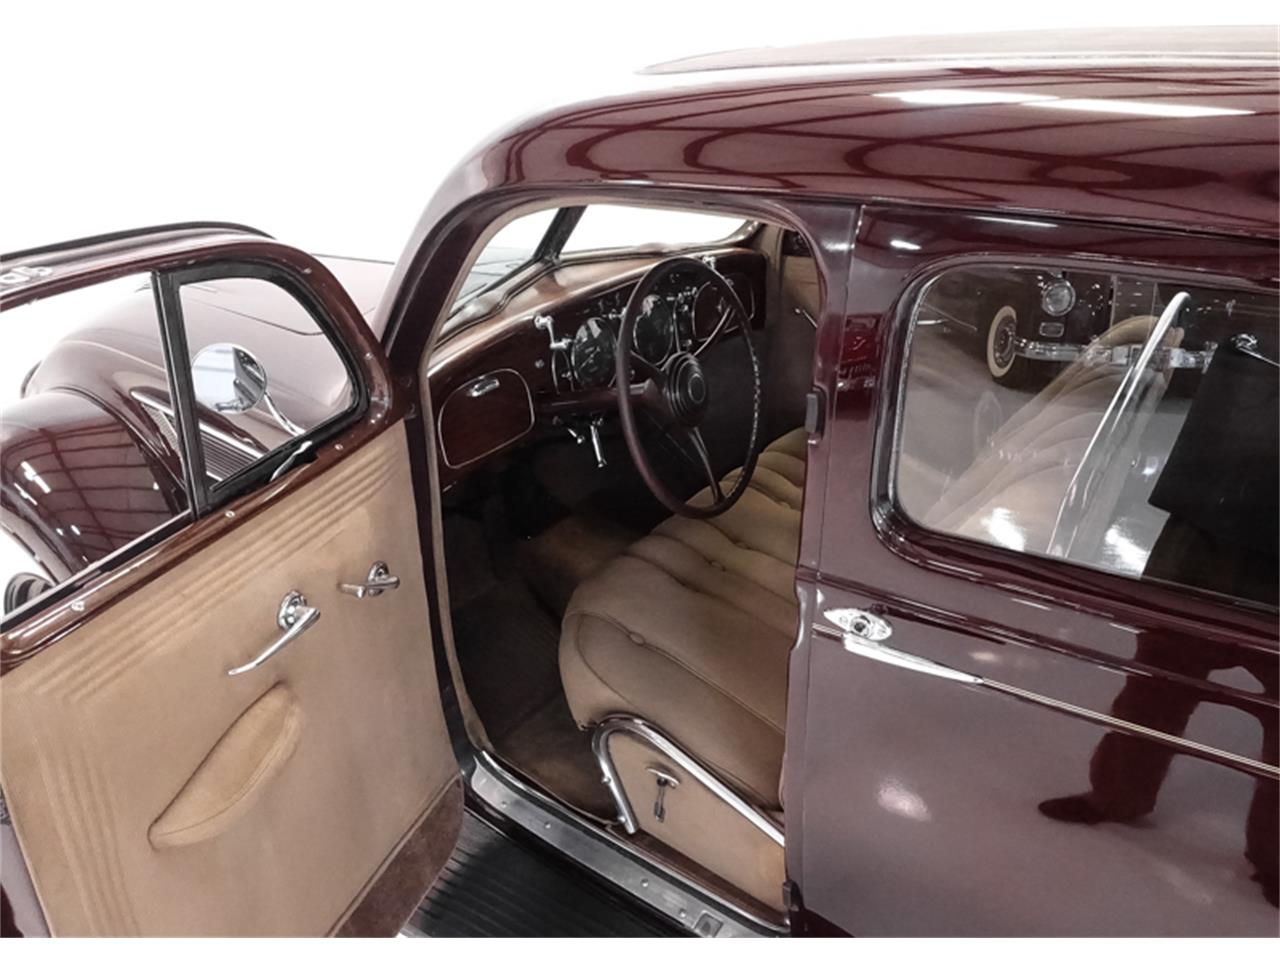 1935 Chrysler Airflow for sale in St. Louis, MO – photo 21